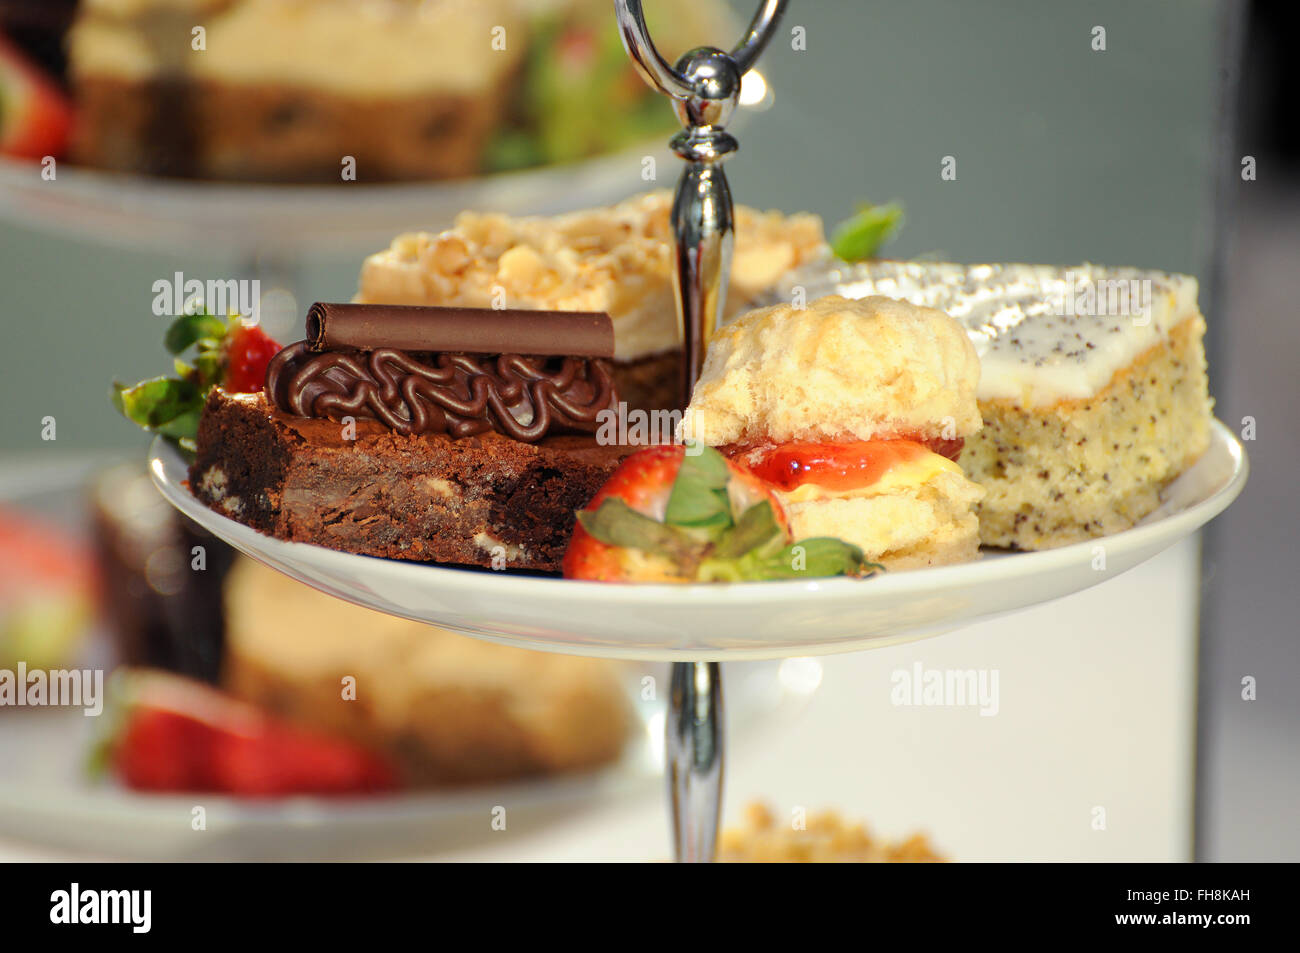 Fancy cakes on a cake stand at a buffet. Selective focus with good separation of depth. - Stock Image